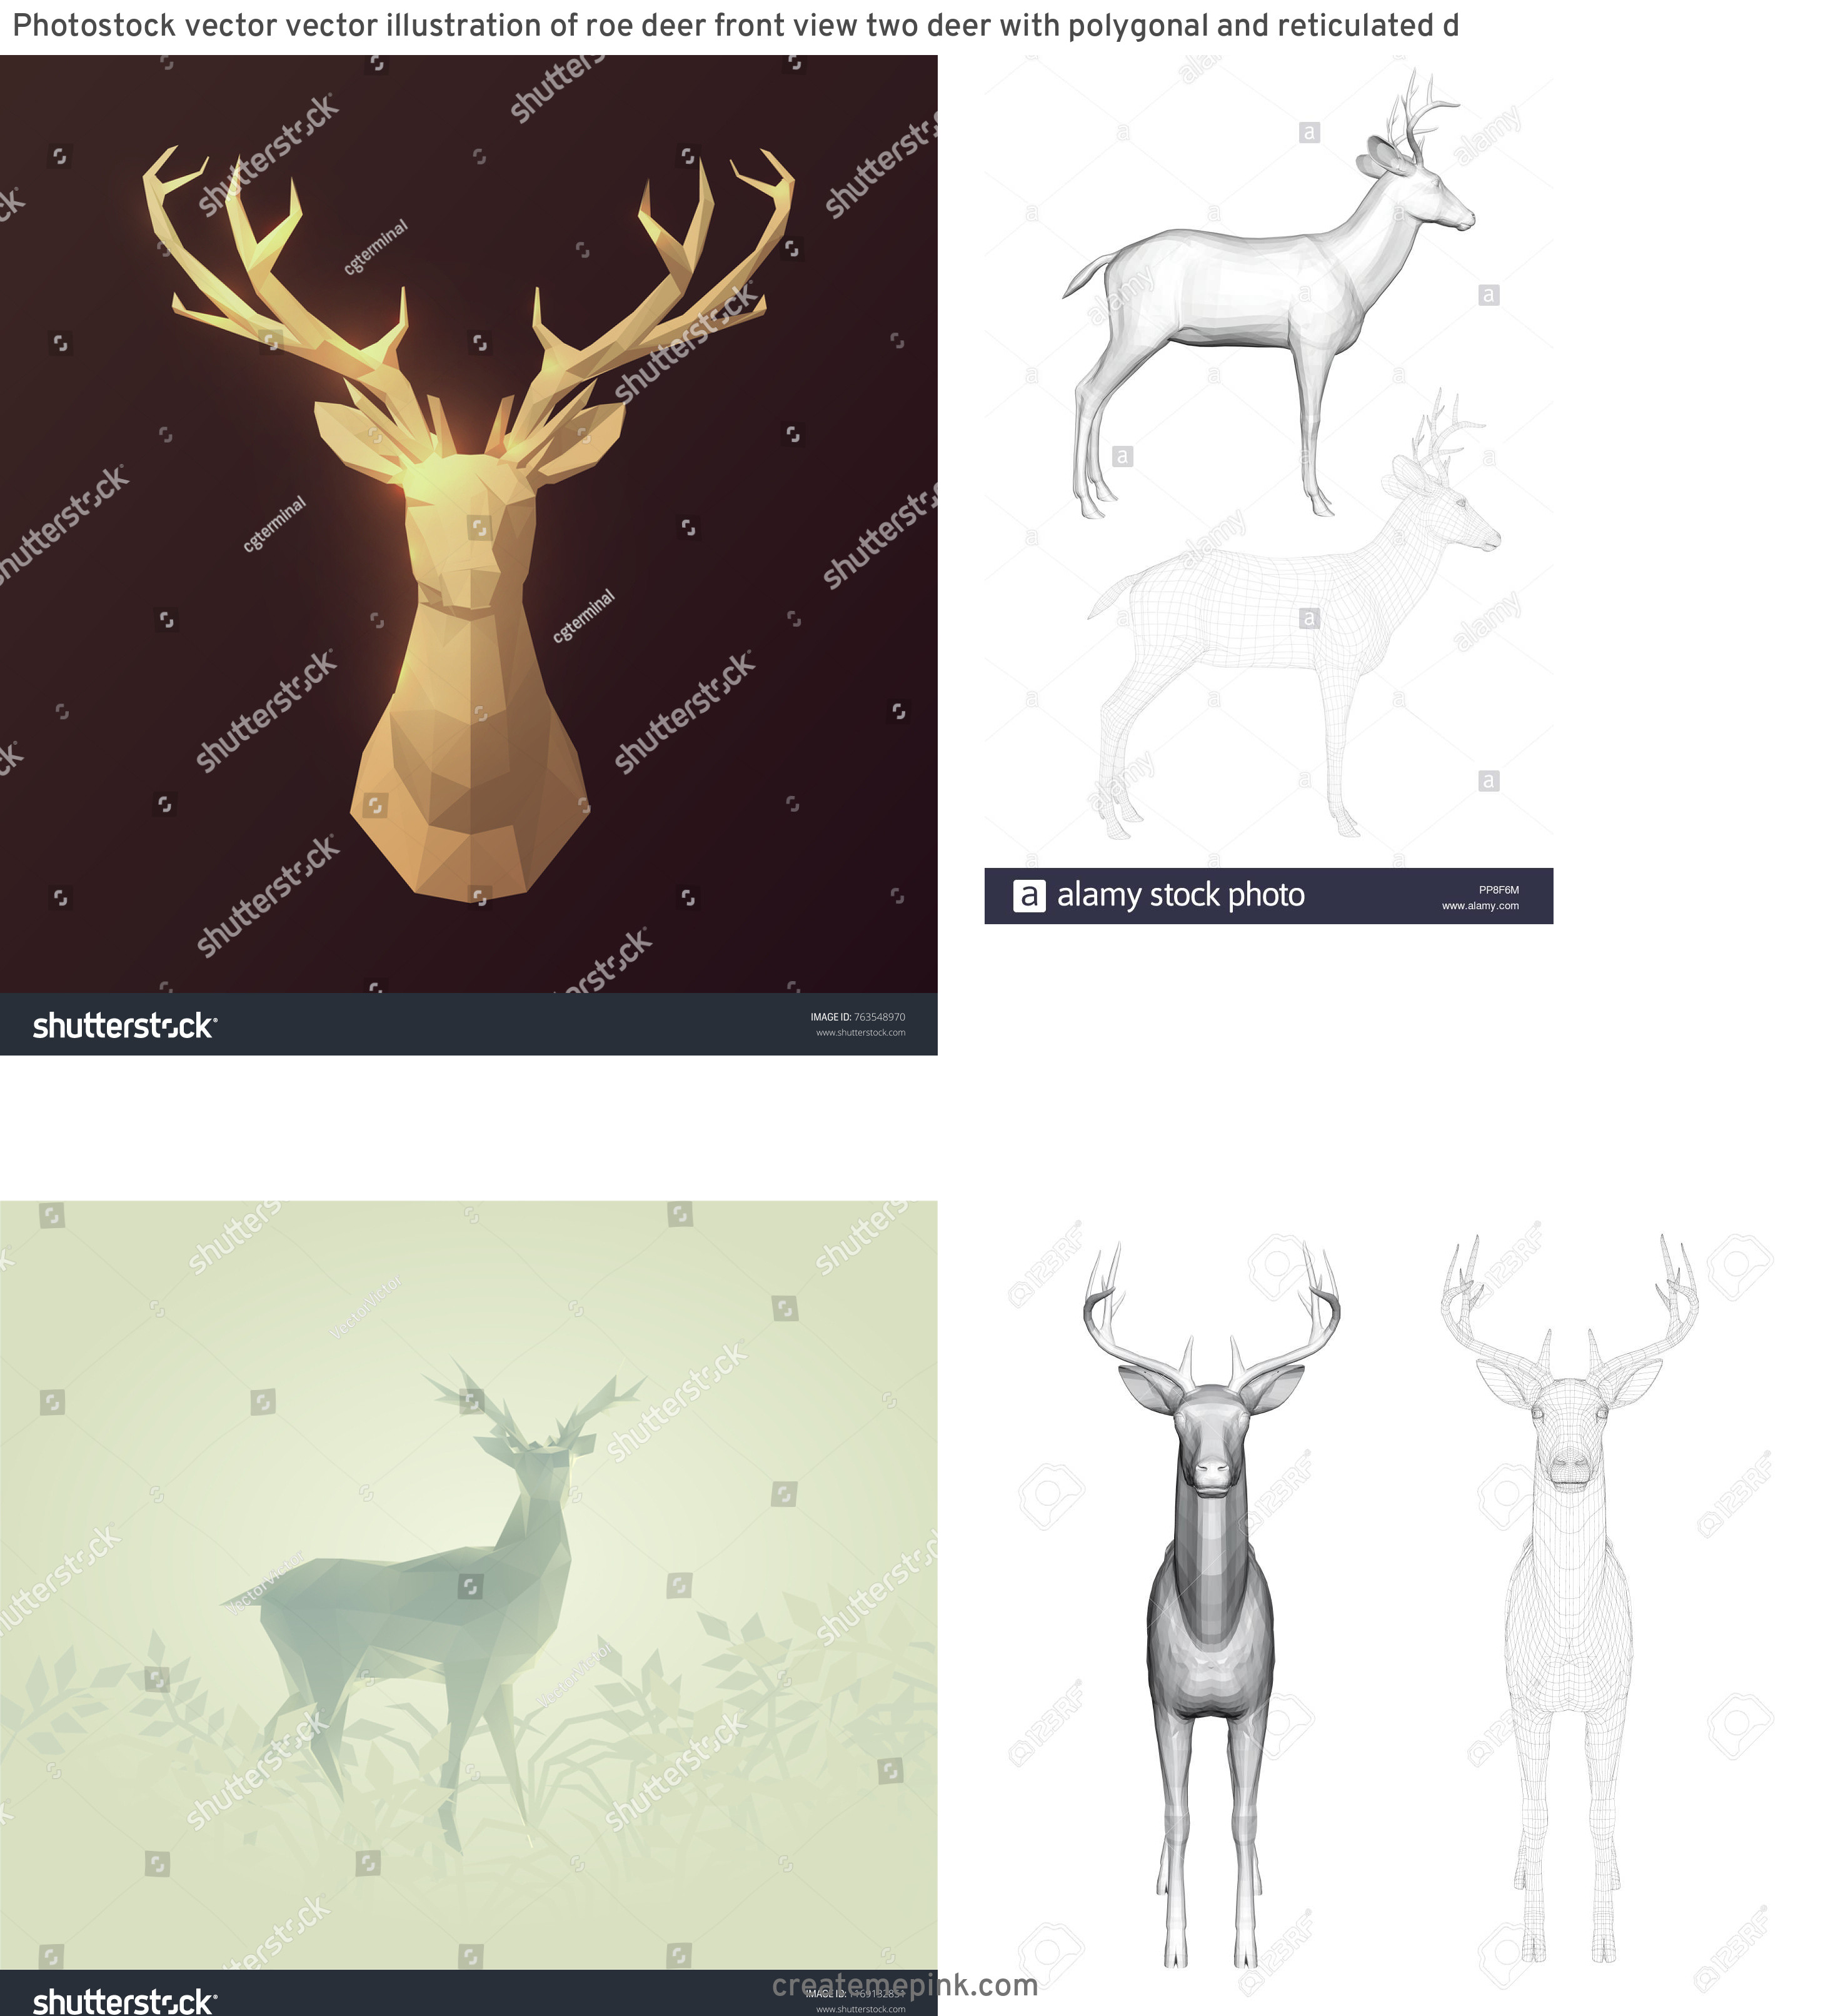 3D Vector Of A Deer: Photostock Vector Vector Illustration Of Roe Deer Front View Two Deer With Polygonal And Reticulated D